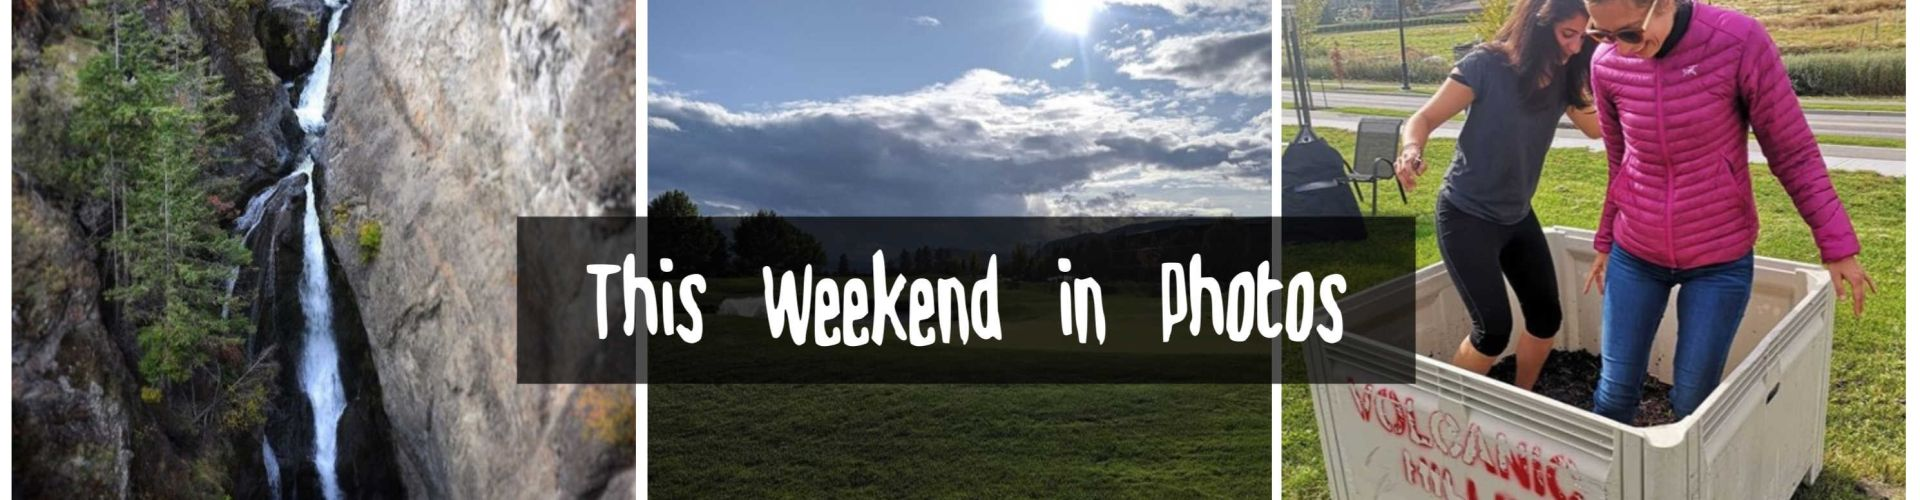 Weekend in Photos